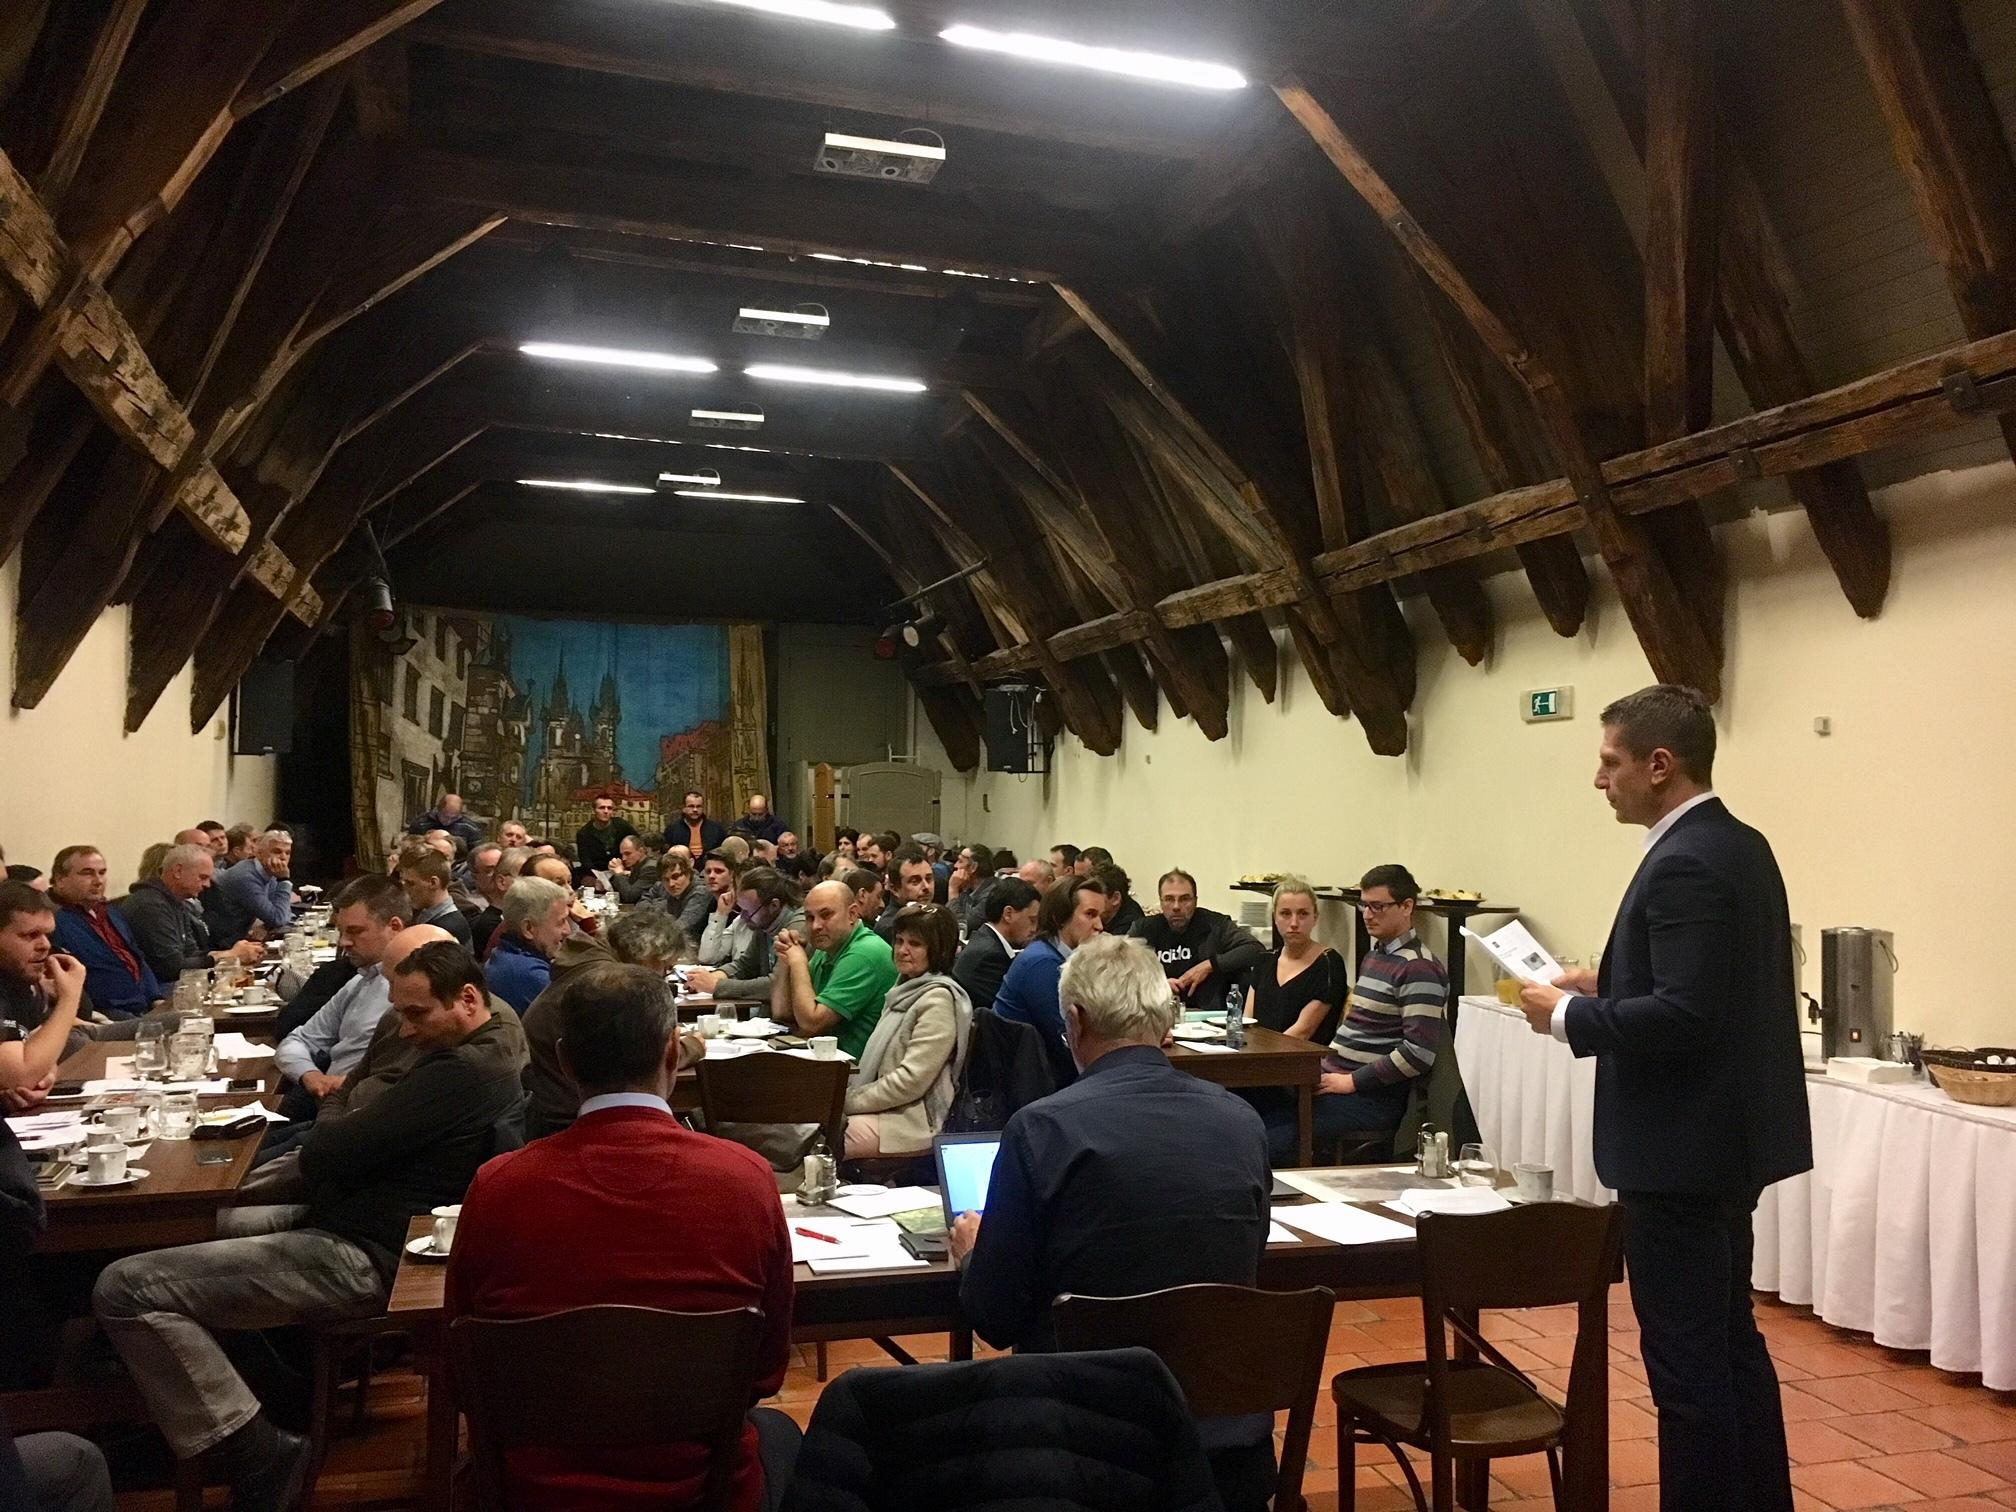 We took part in the General Meeting of the Czech and Moravian Microbreweries Association 1